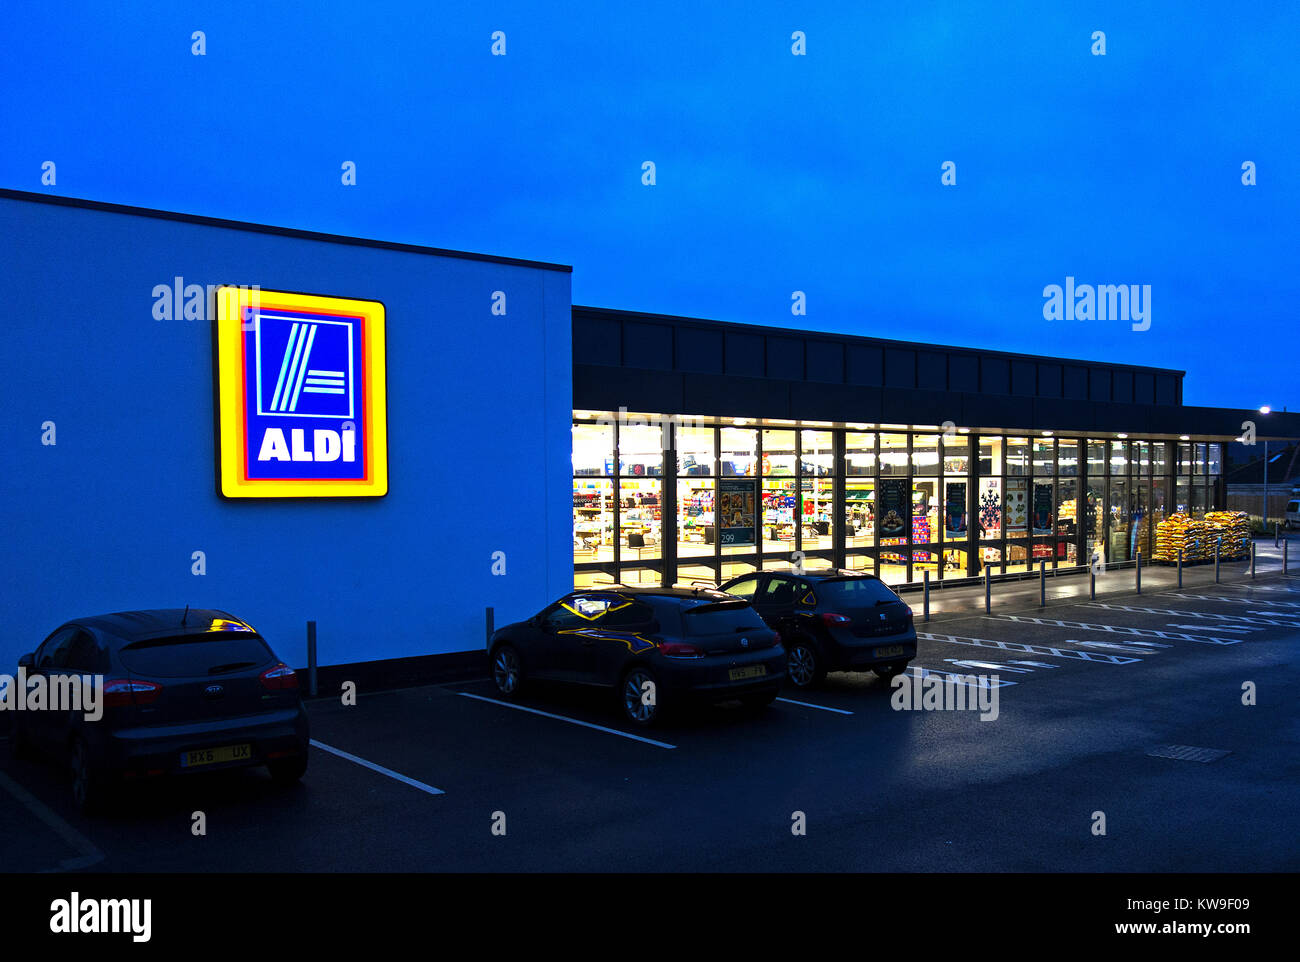 aldi store open early morning opening Stock Photo